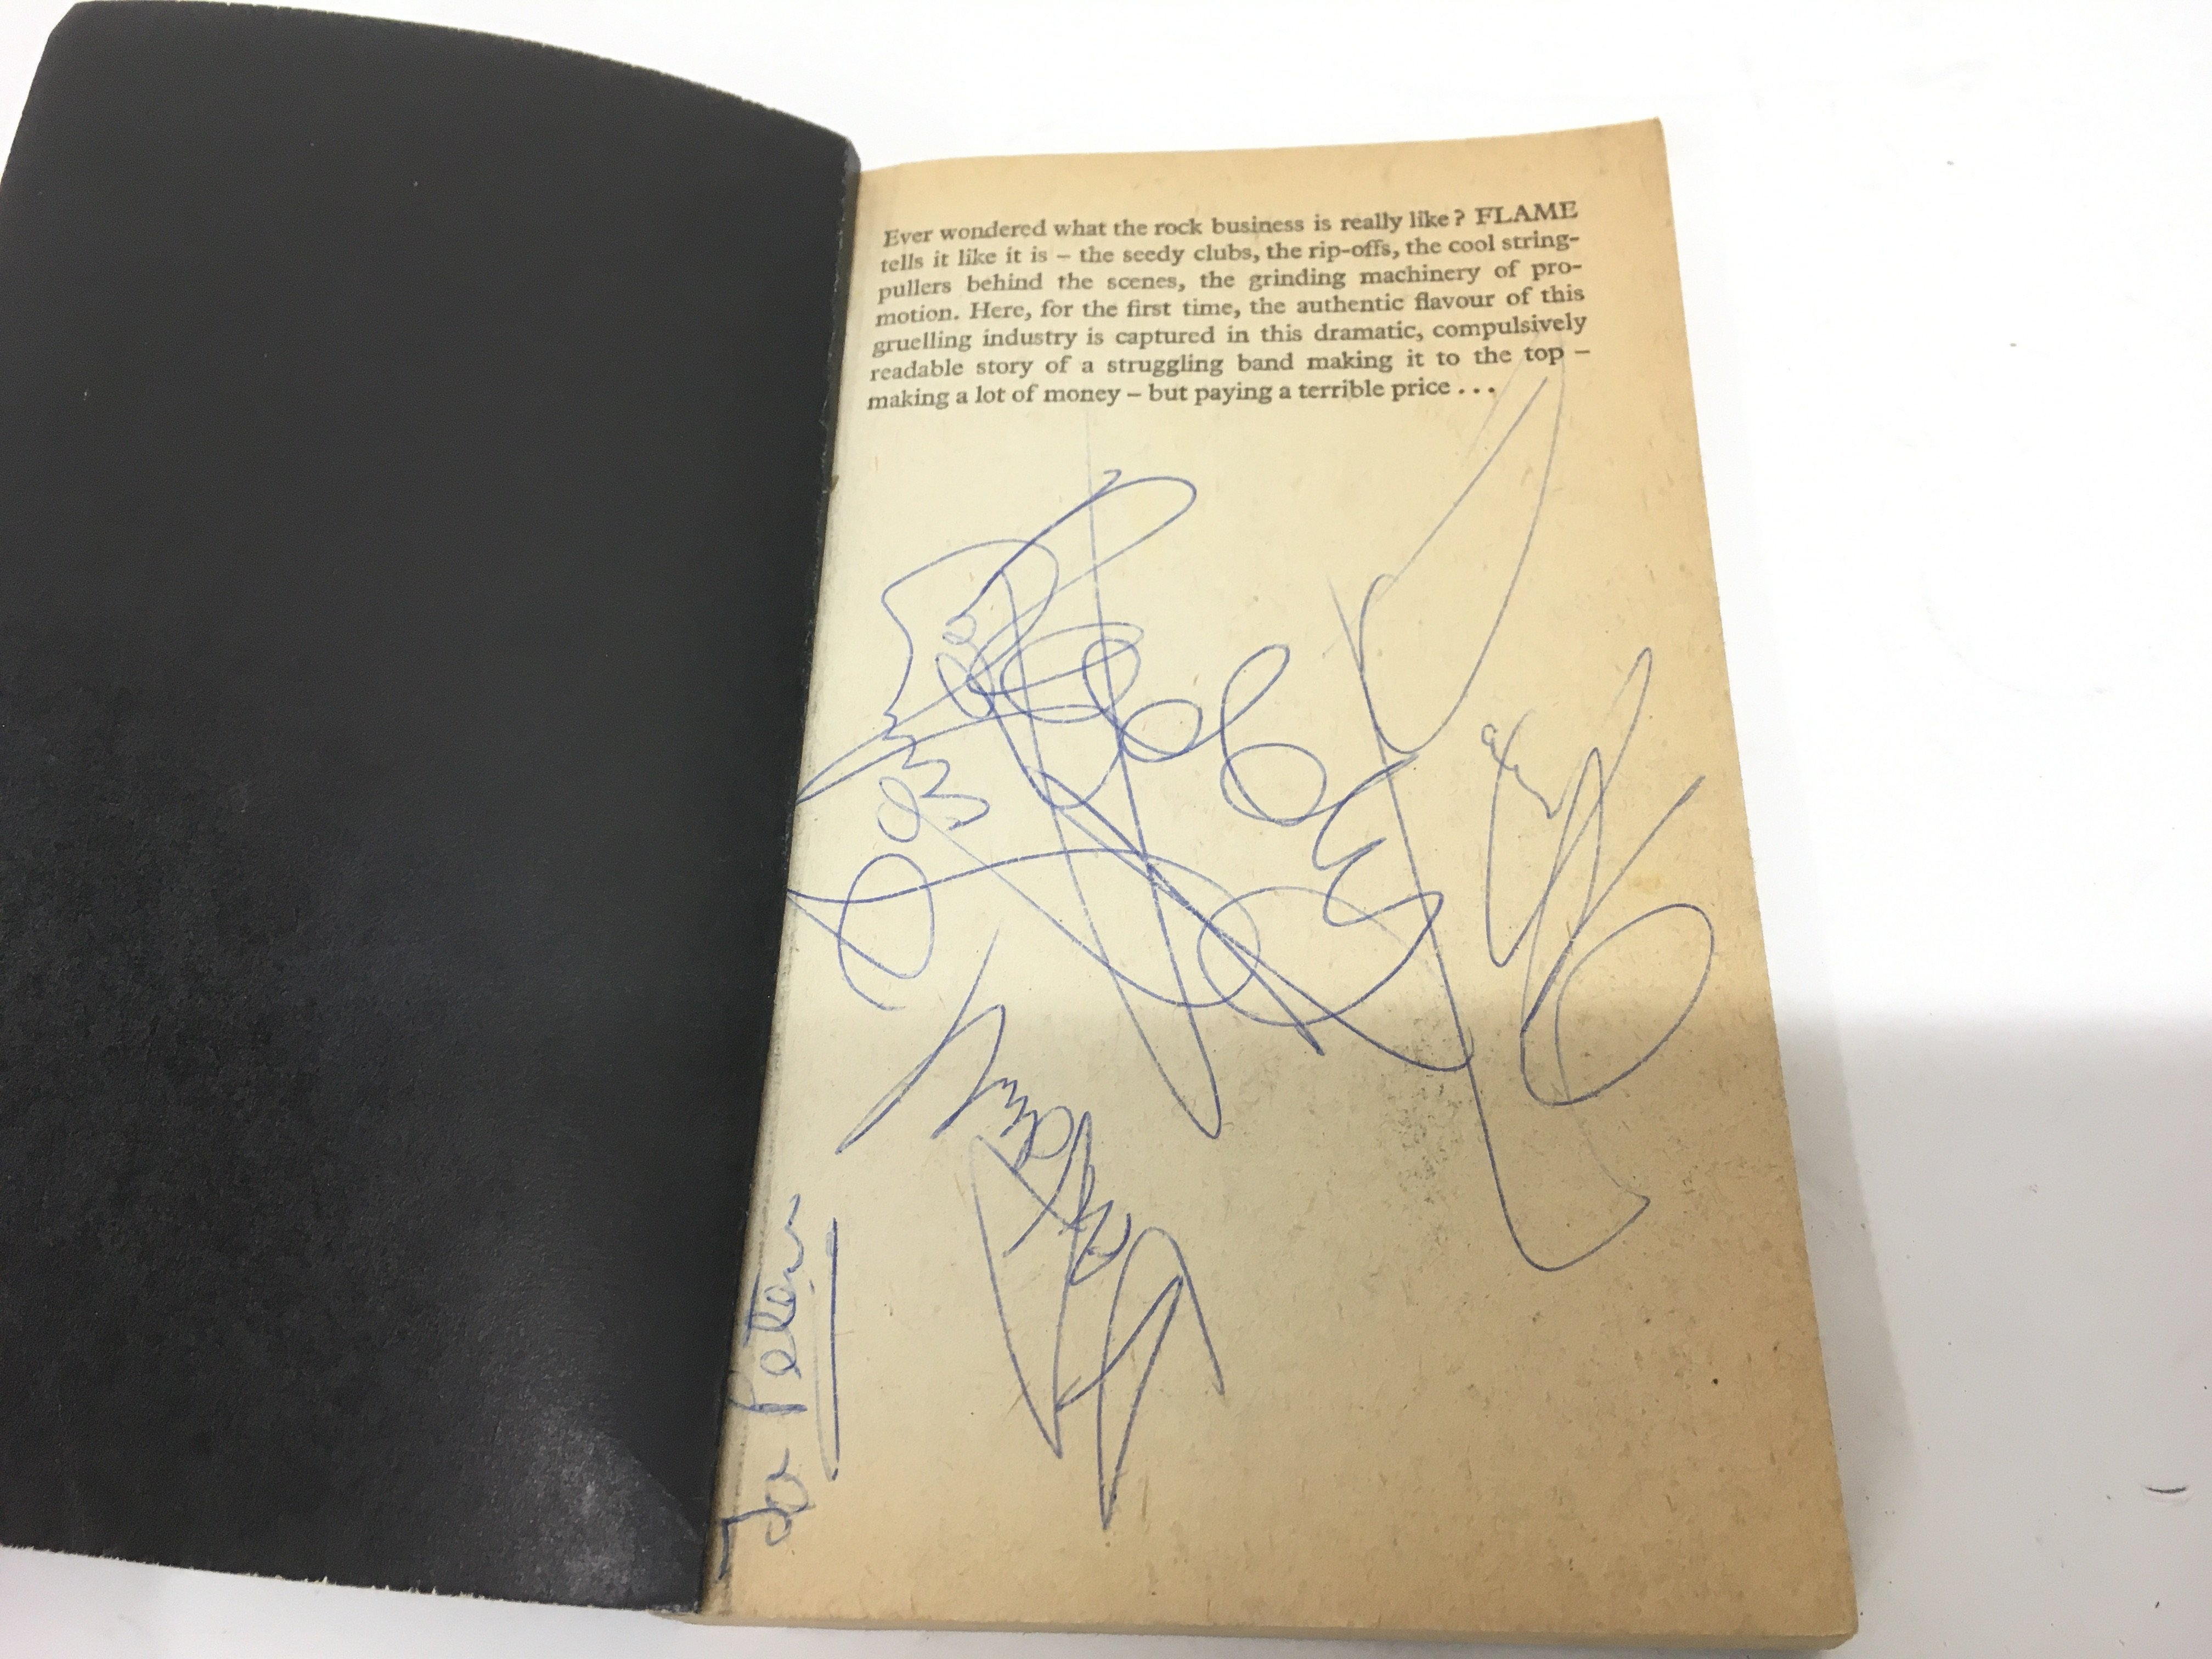 A fully signed 'Slade In Flame' paperback book. - Image 2 of 2